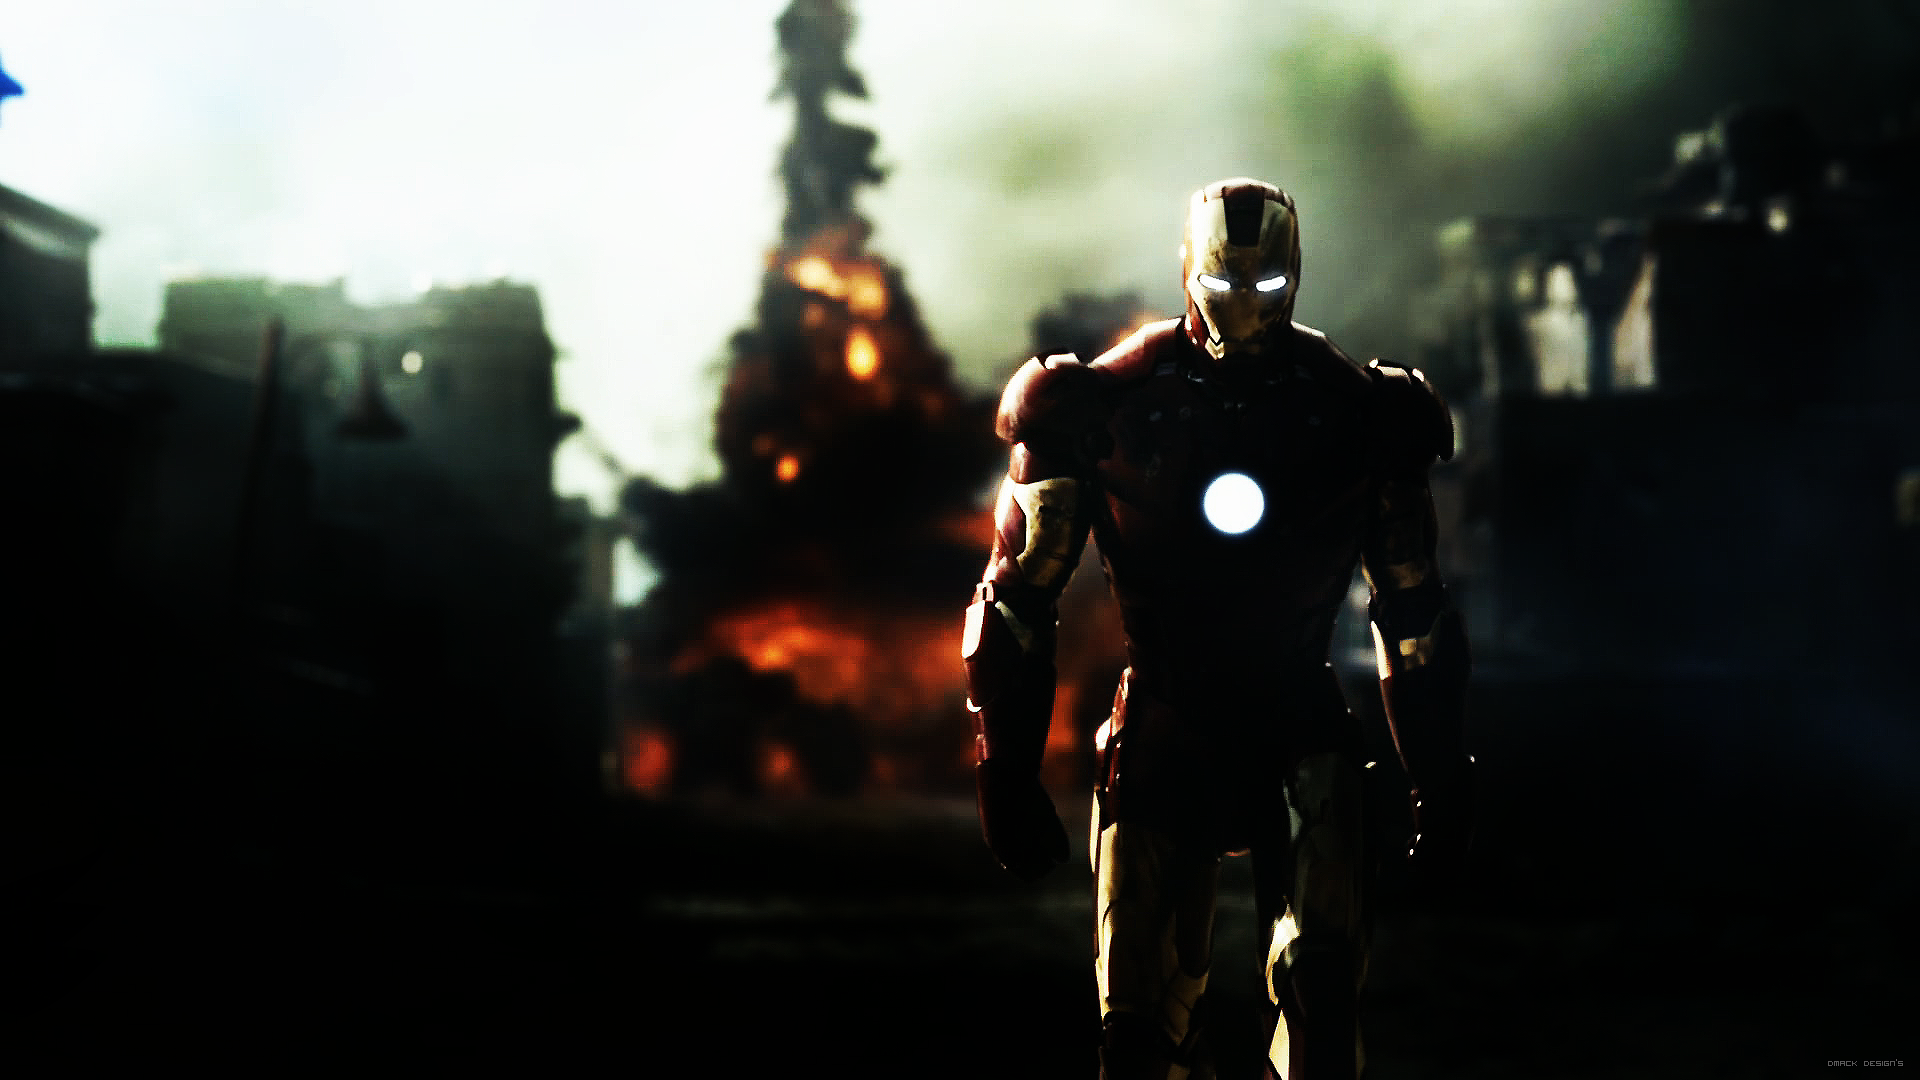 Iron Man Wallpapers Full Hd Desktop Background: Wallpapers Iron Man HD